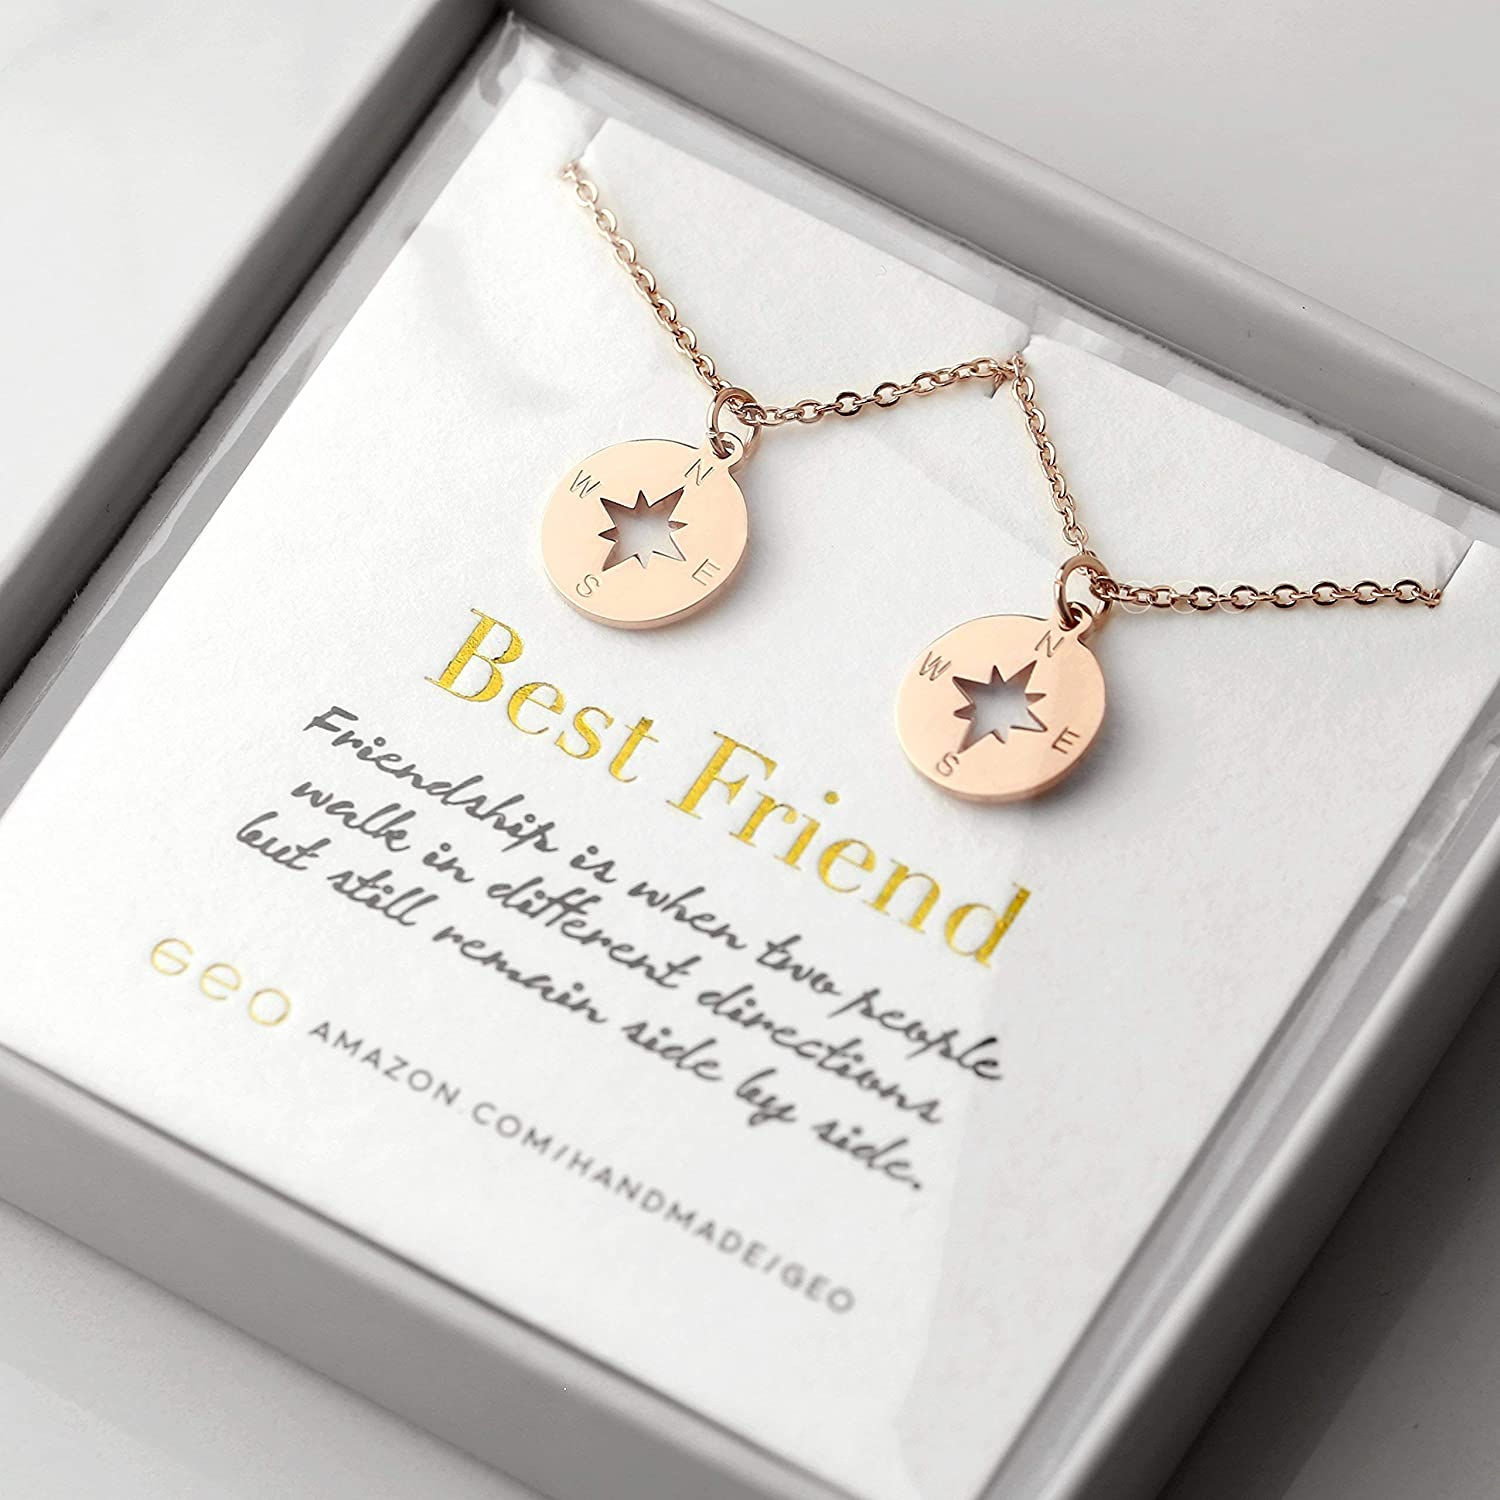 64ae12819e0fc Best Friend Necklaces For Two Rose Gold Compass Necklaces For Women Best  Friend Gifts BFF Necklace For 2 Friendship Necklace